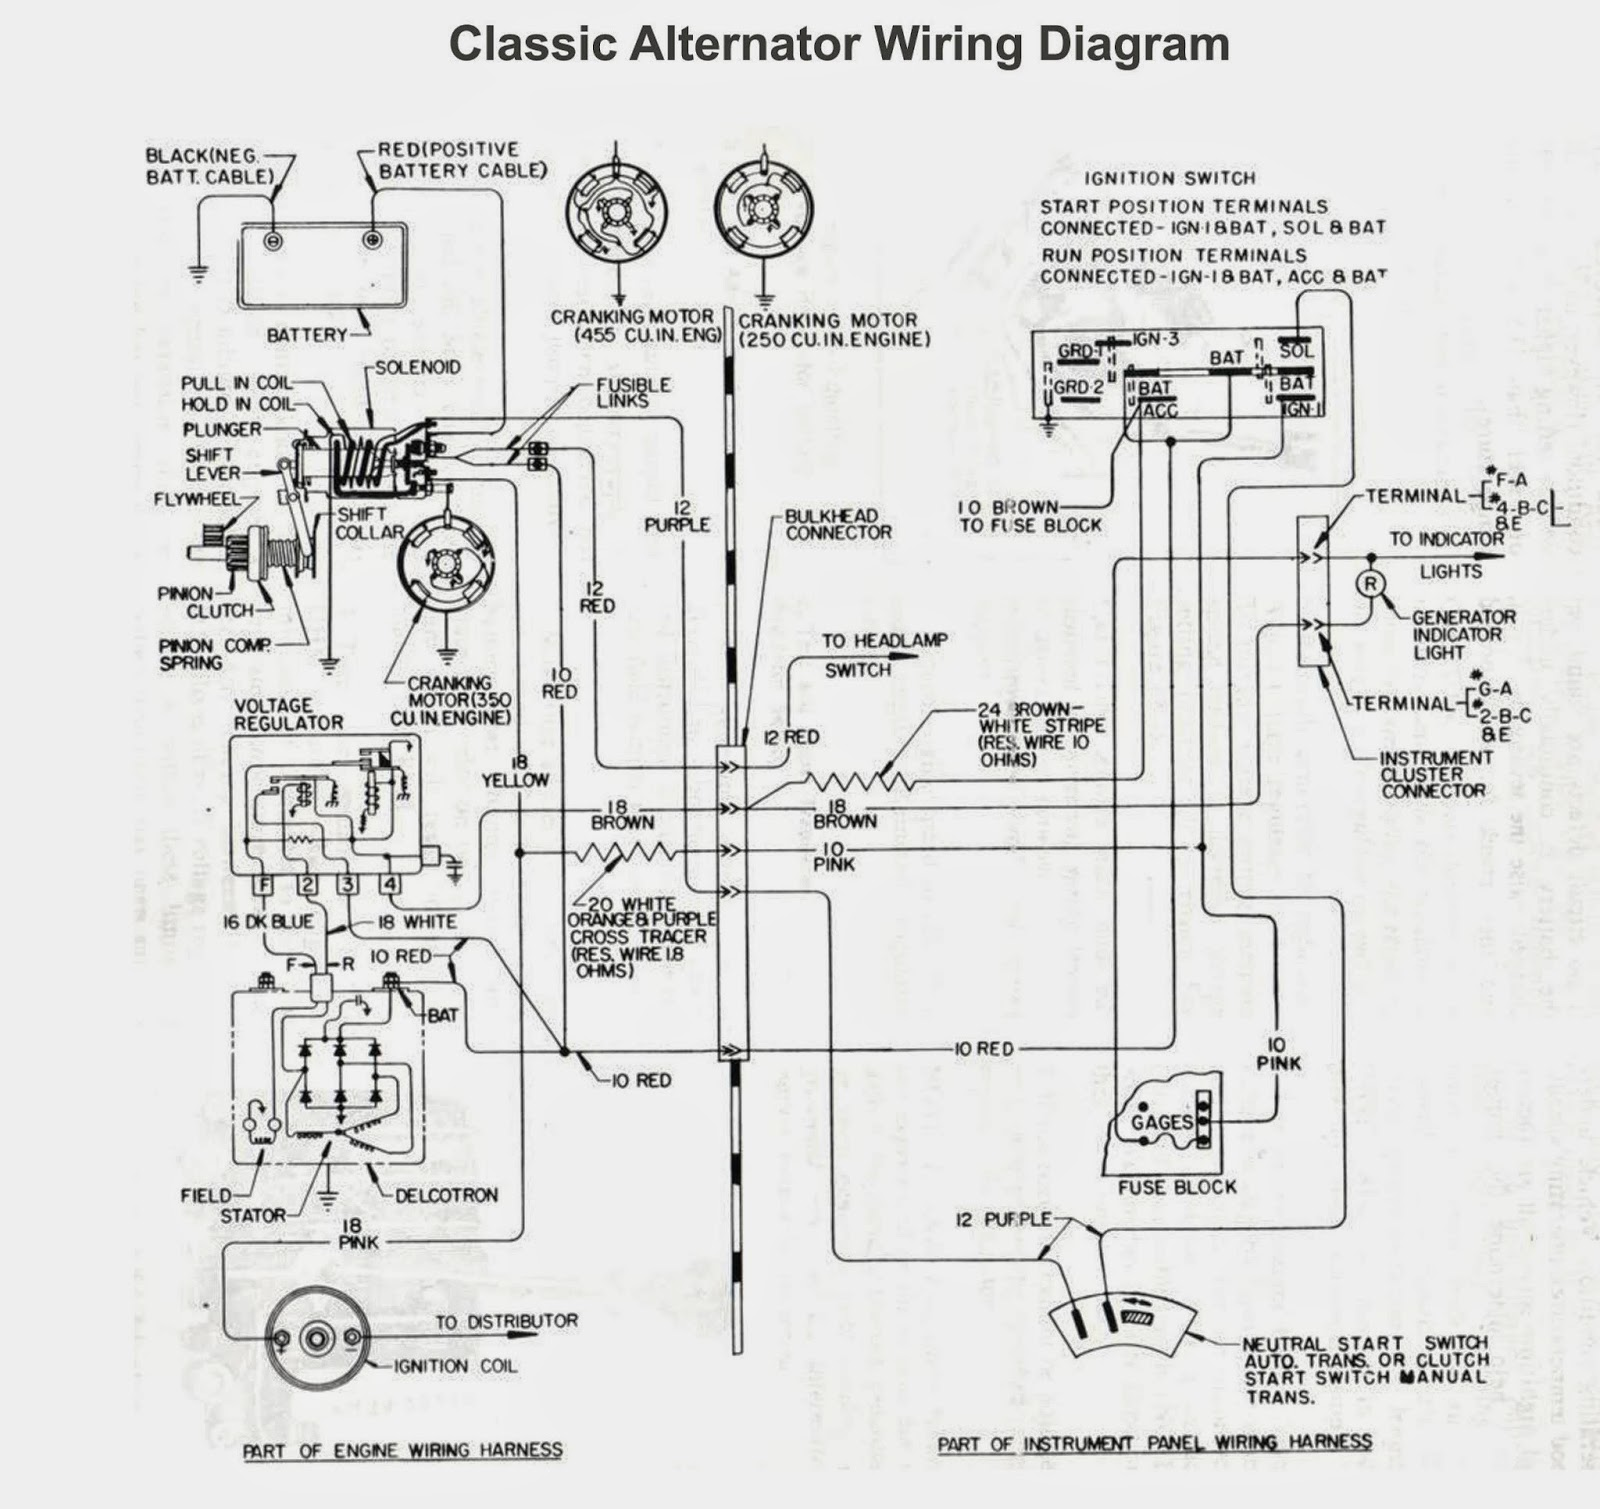 Wiring Diagram Of 4640 John Deere - Wiring Schematics on